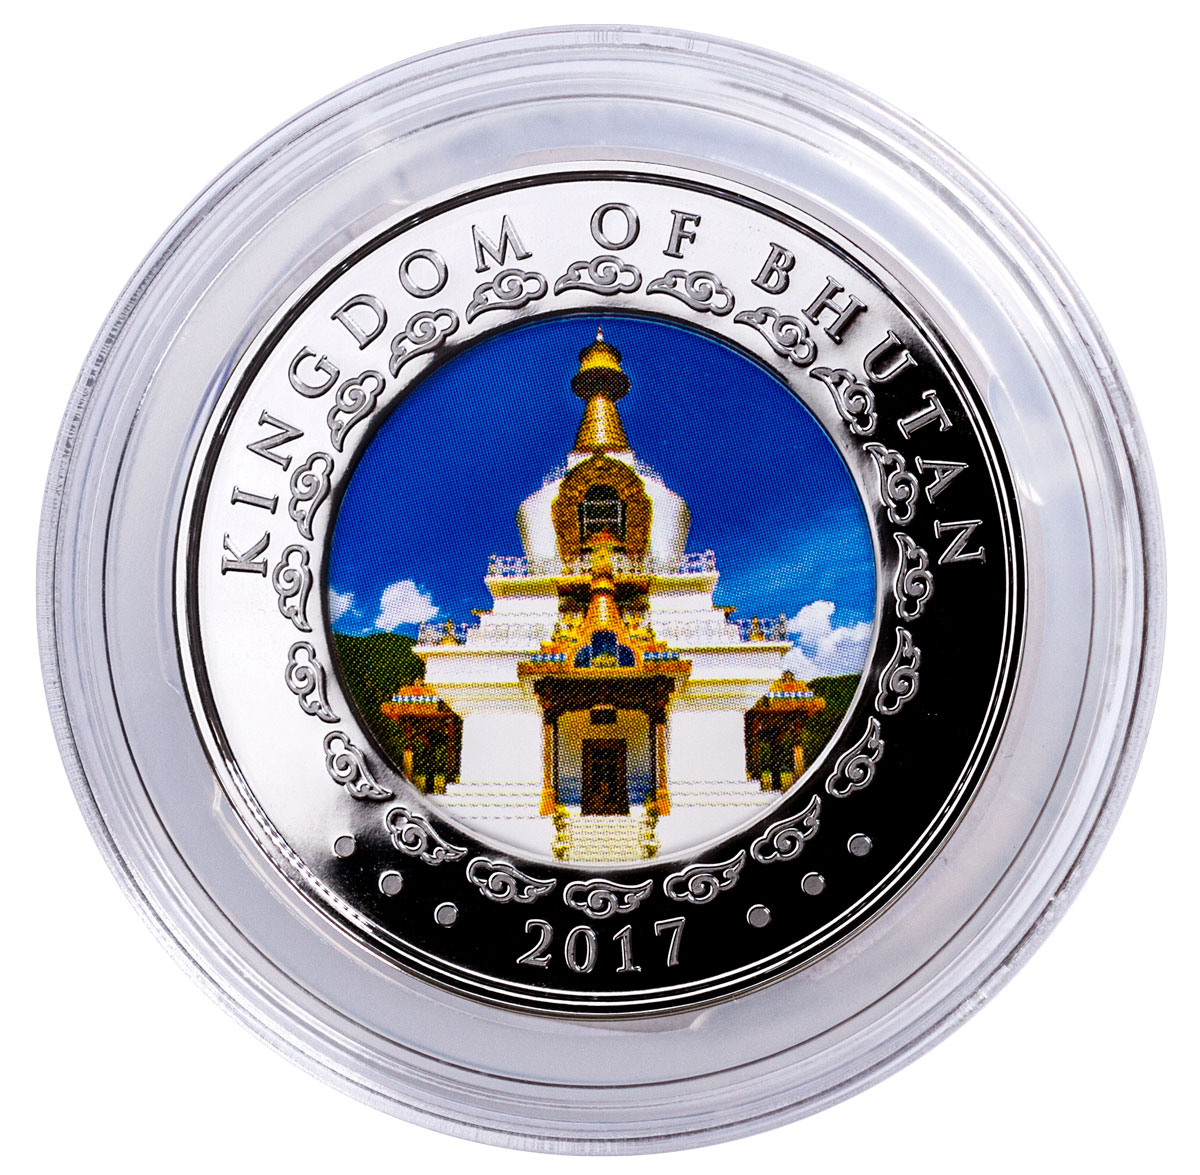 2017 Kingdom of Bhutan 1 oz Ultra High Relief Silver Lunar - Rooster Colorized Proof 500 Coin GEM Proof OGP